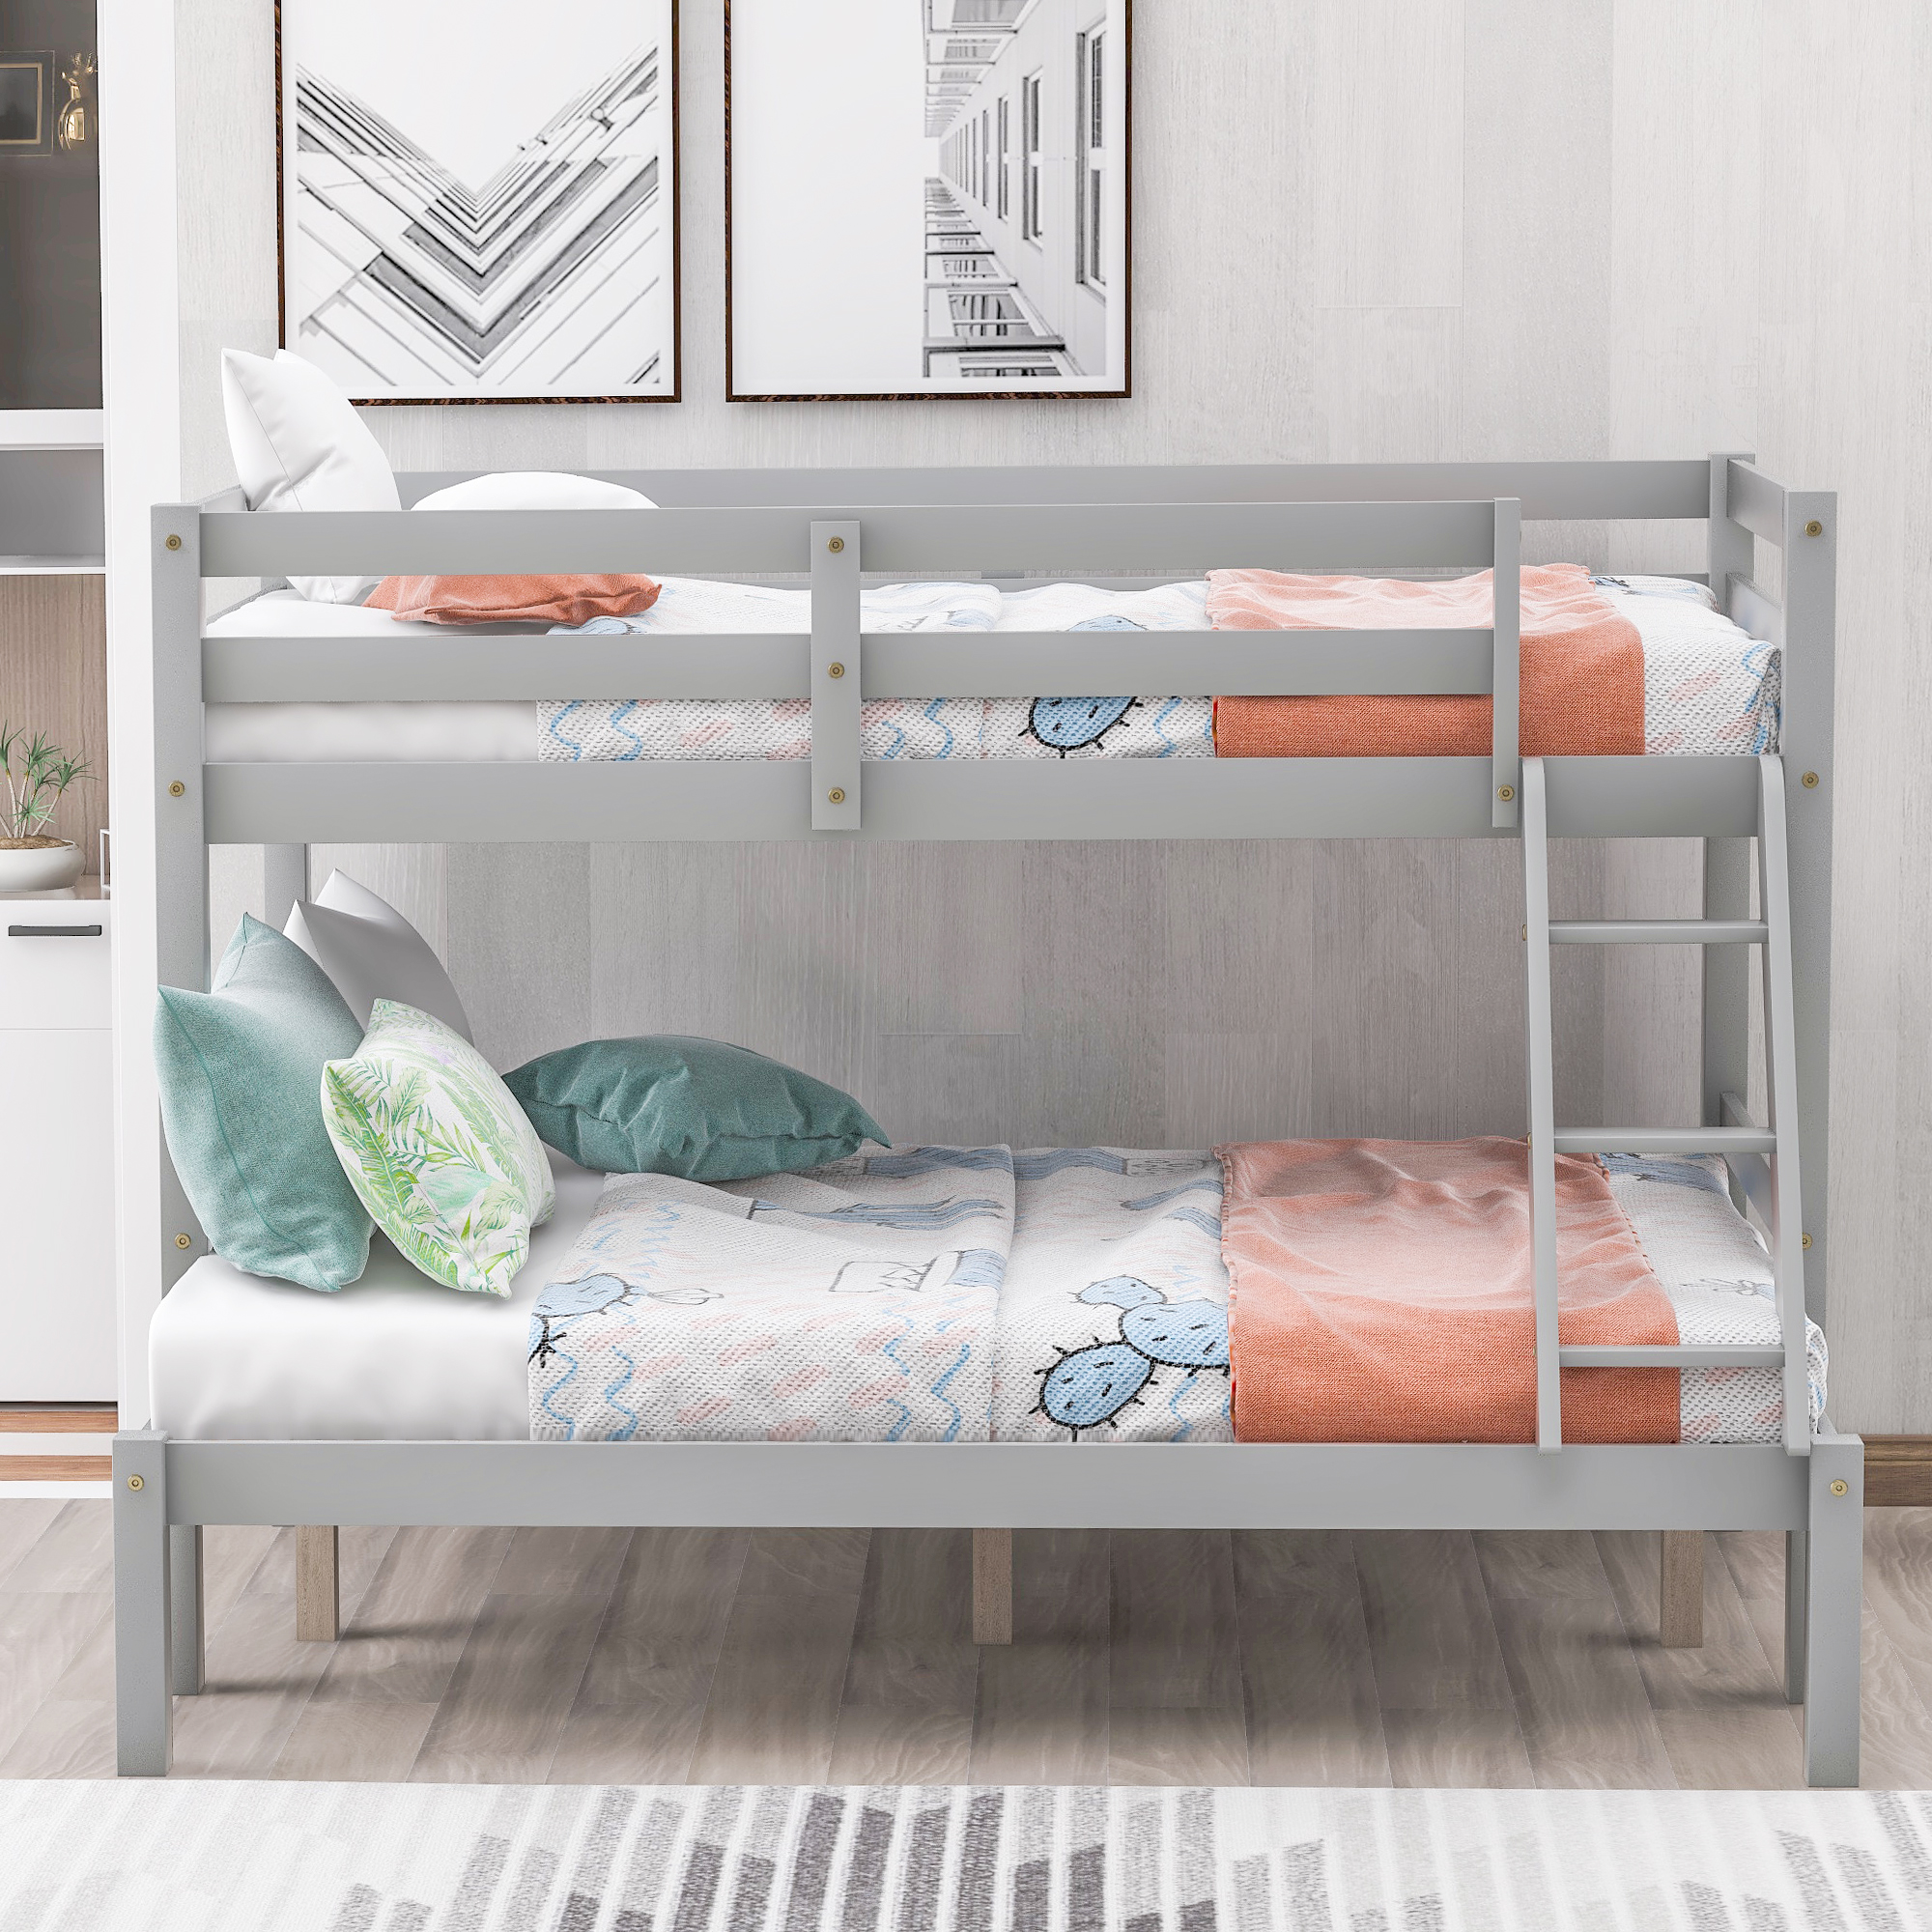 Bunk Beds For Kids Modern Twin Over Full Wood Bunk Bed Wood Bunk Beds Twin Over Full With Ladder And Guard Rail Functional Bunk Beds Twin Over Full Size For Dormitory Apartment